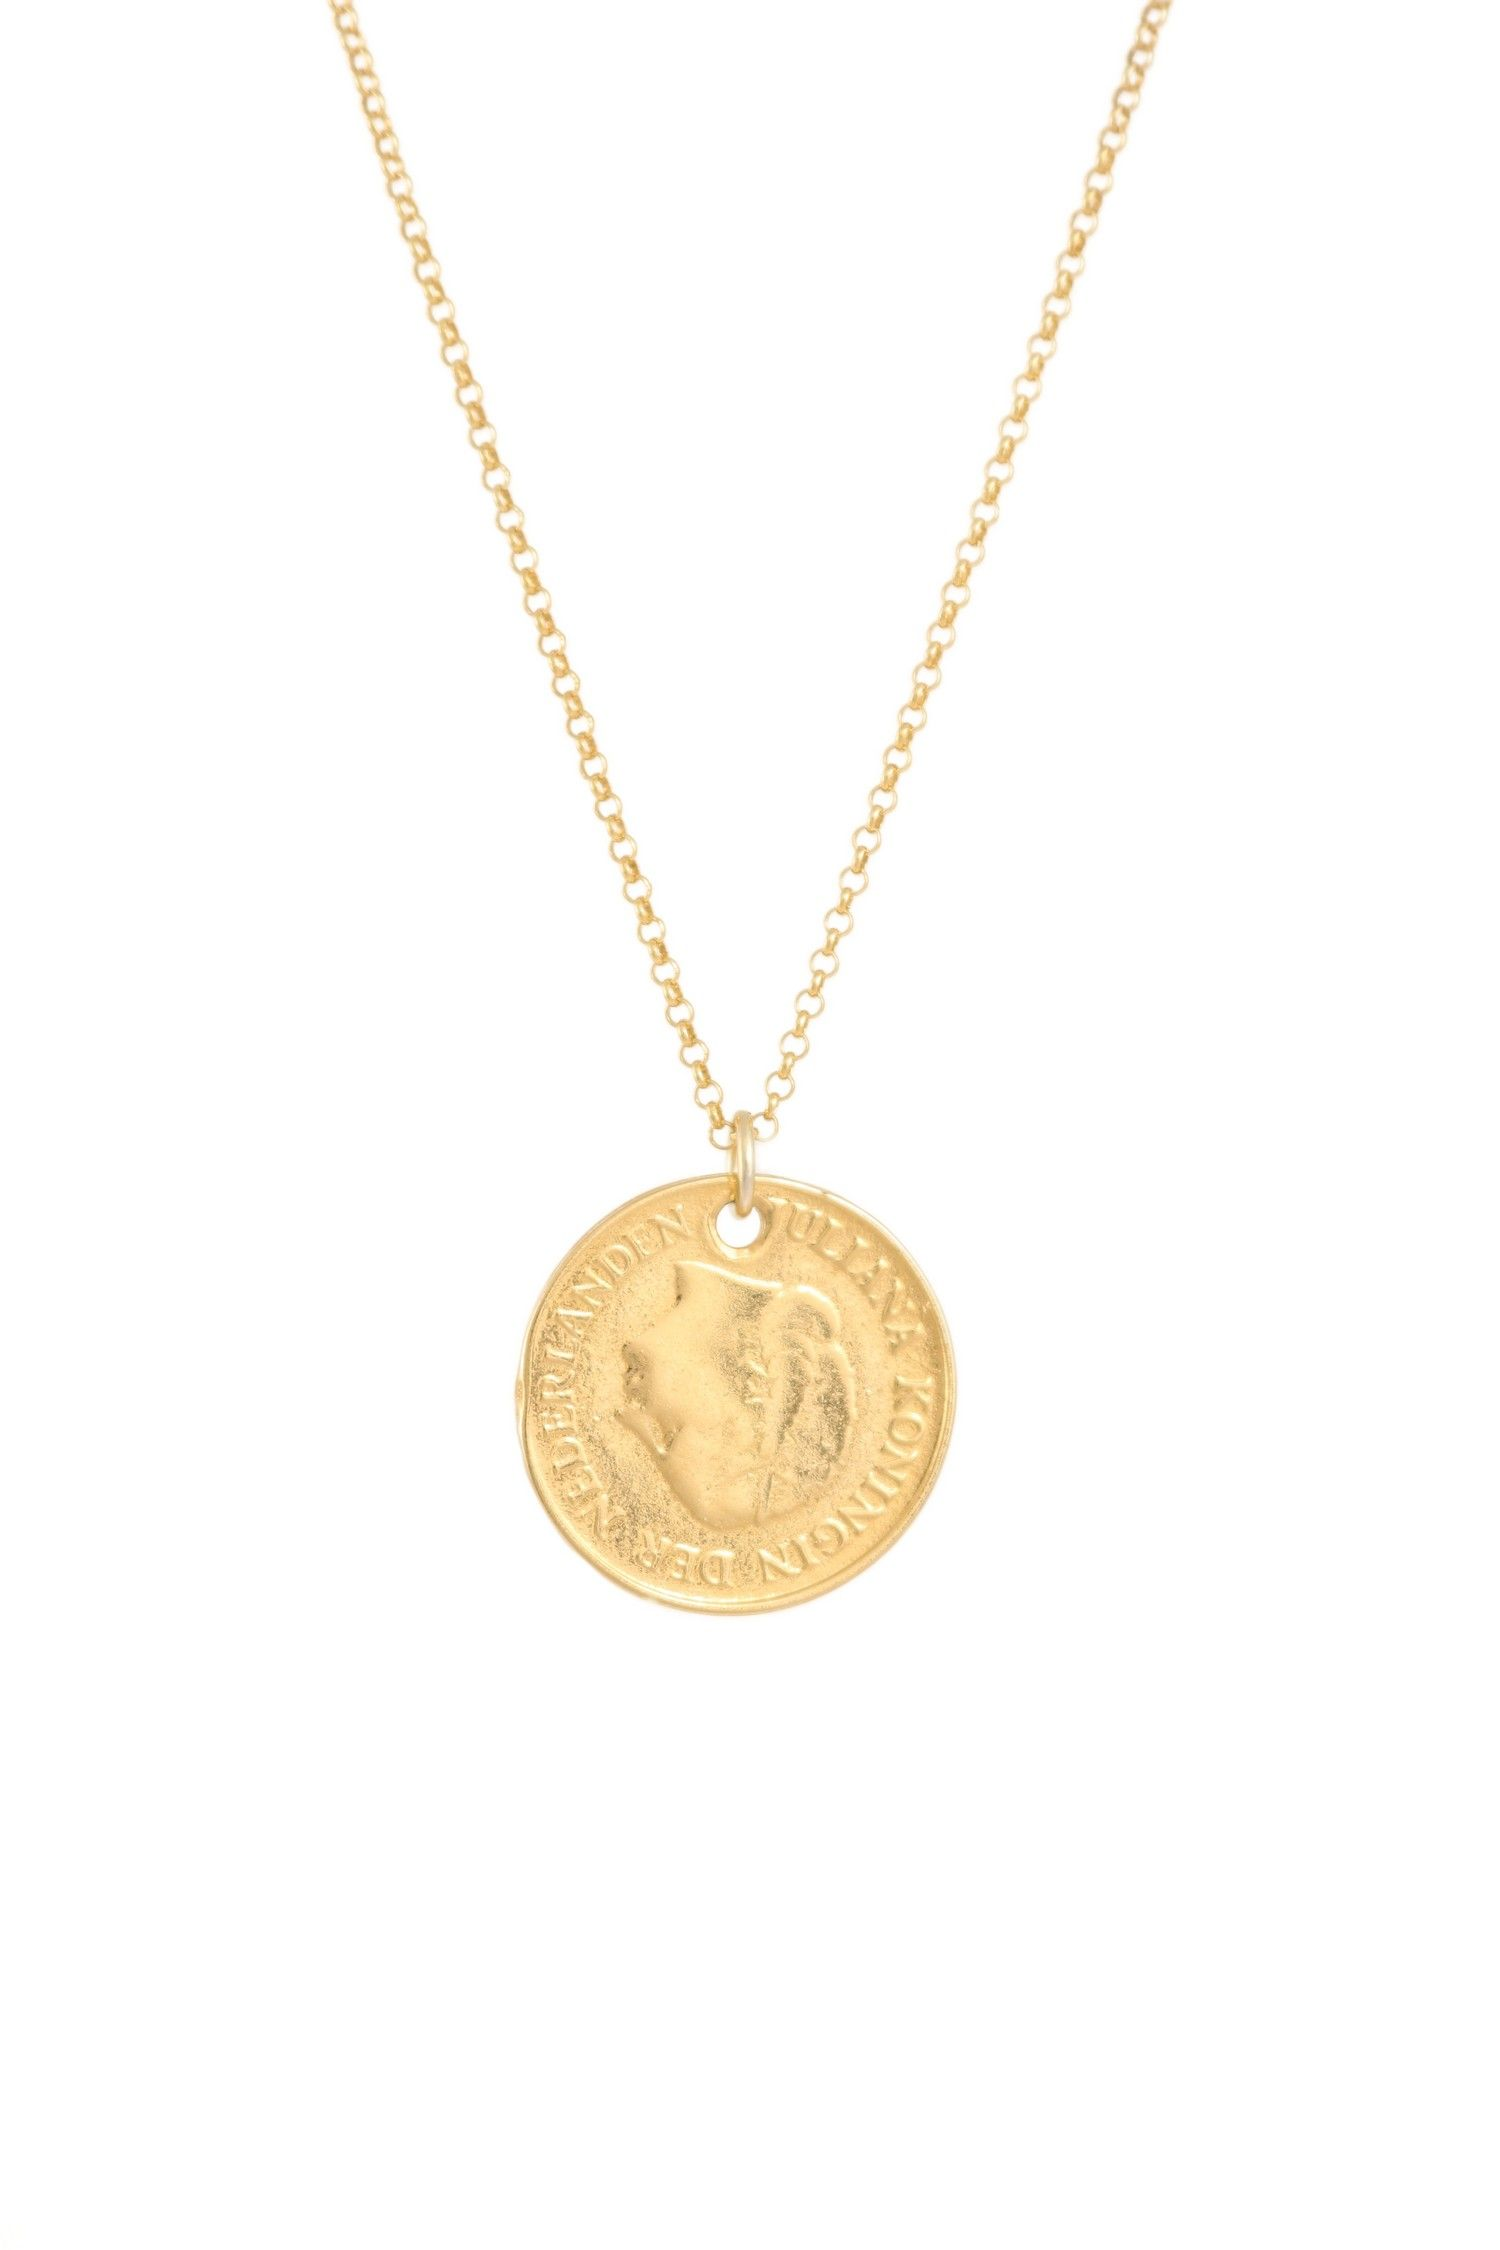 Moanina Violetta Coin Necklace 925 Sterling Silver Gold Plated